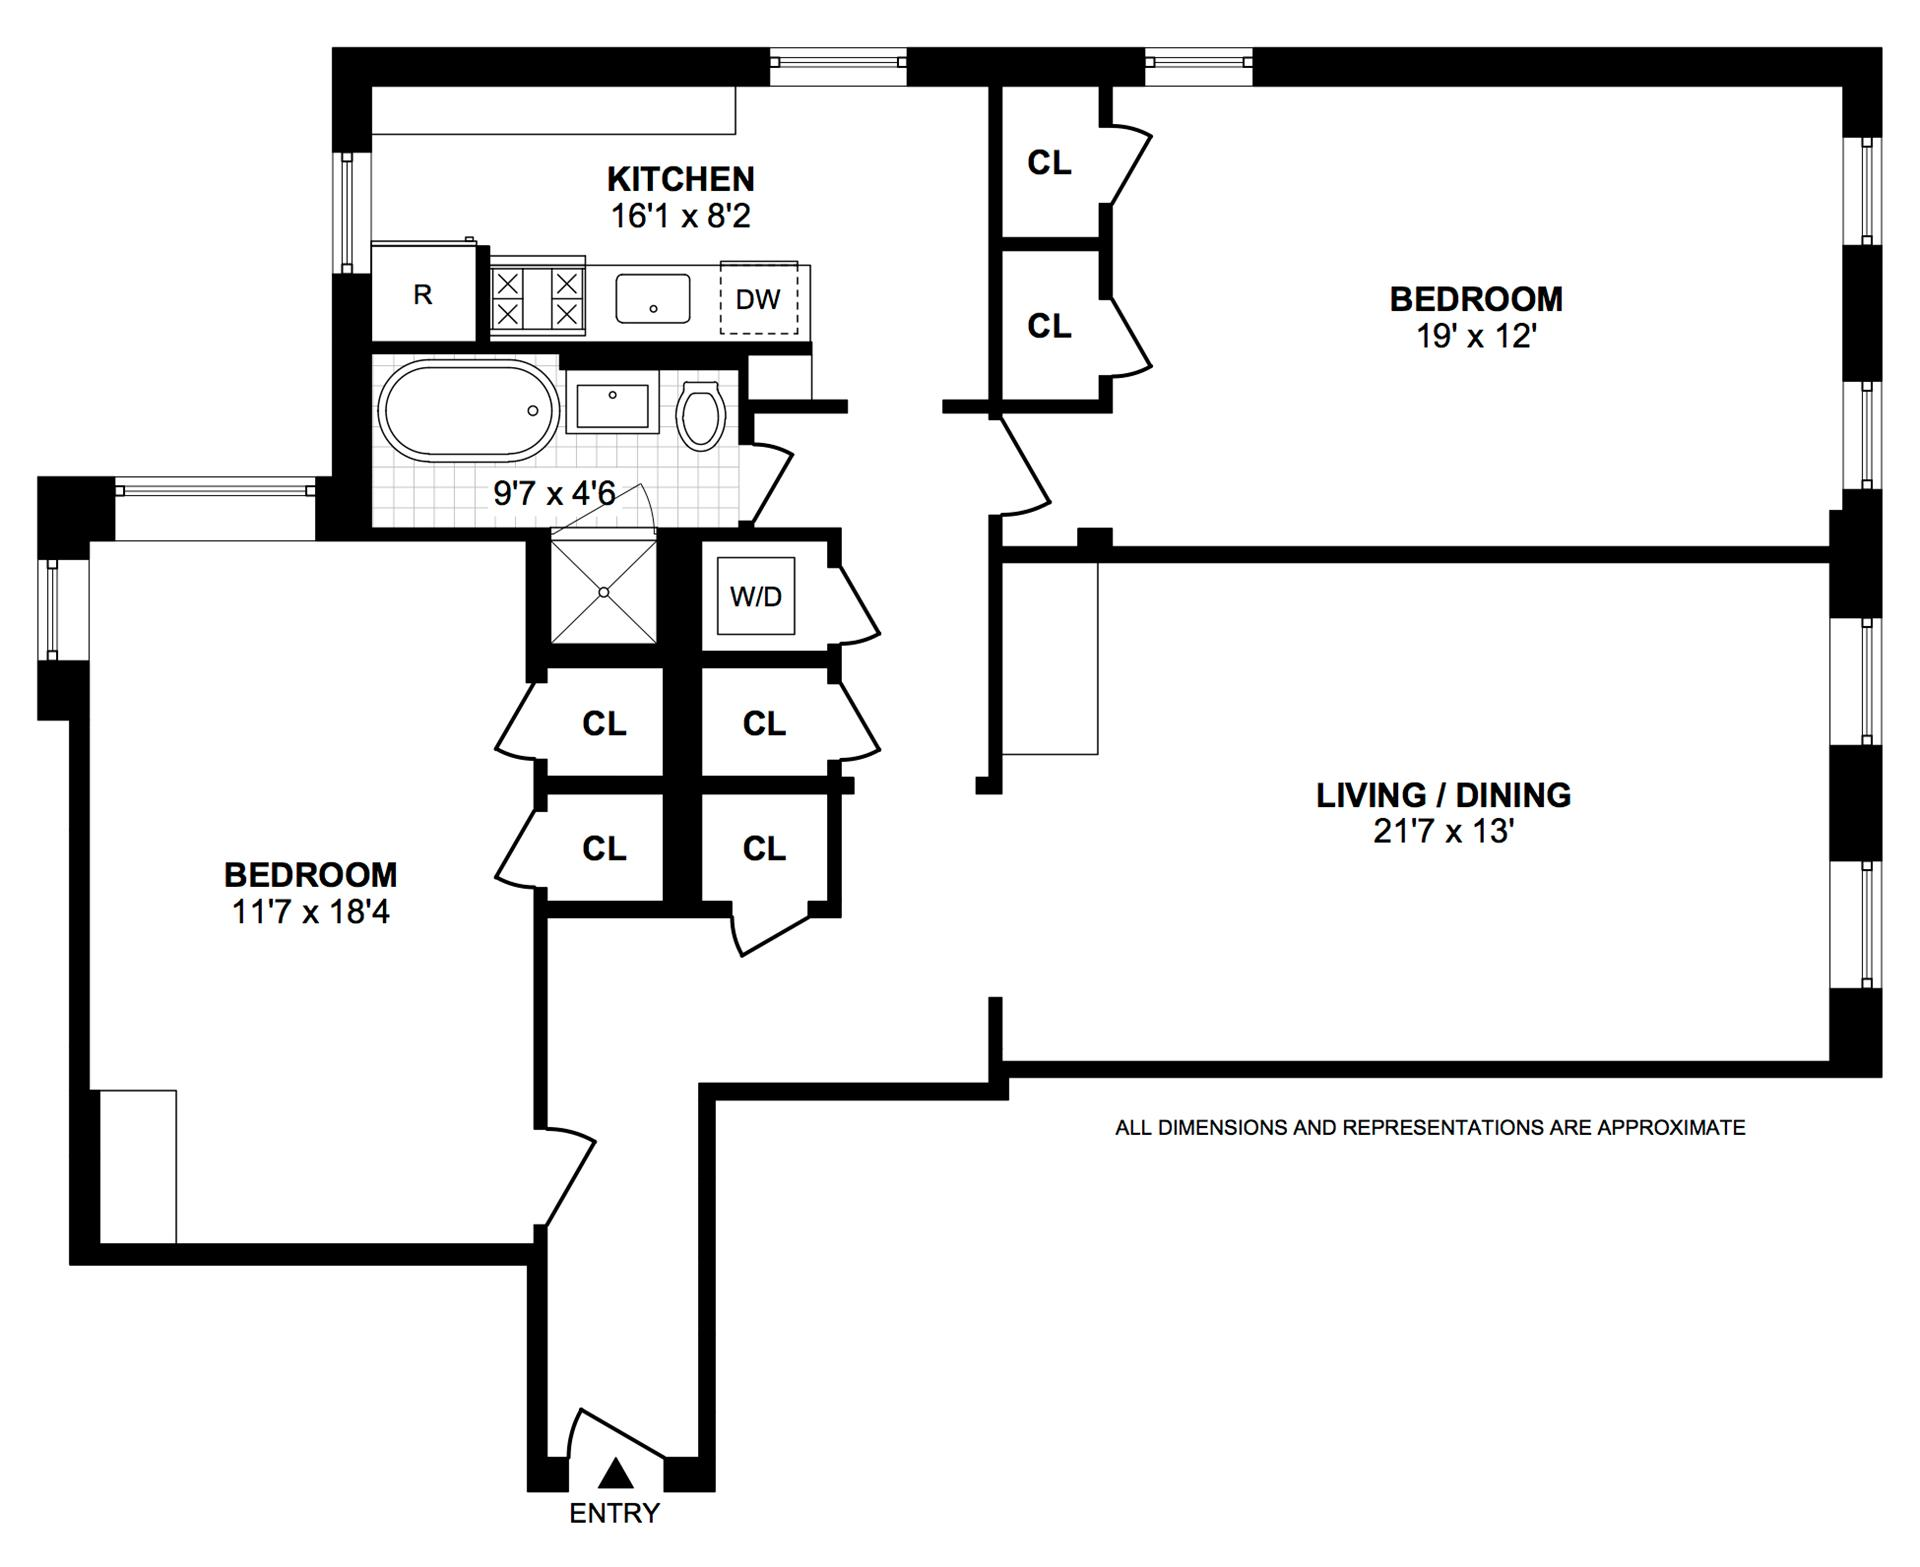 Floor plan of 81 Ocean Pkwy, 4J - Windsor Terrace, New York